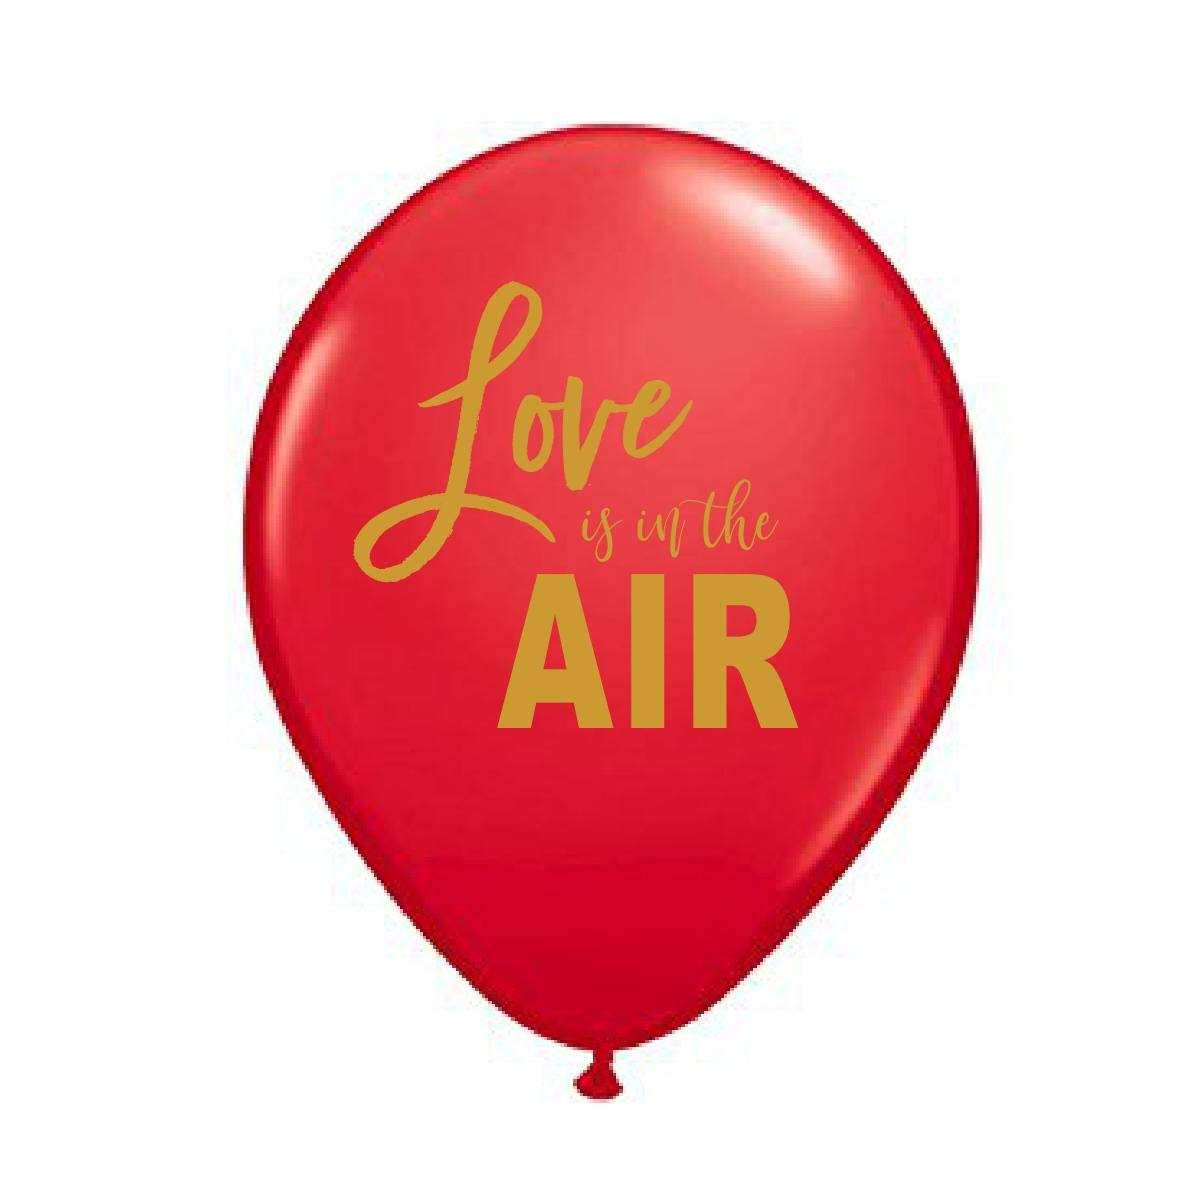 Red Love is in the Air Balloons, Love is in the Air Balloons, Love is in the Air, Engagement Party Decoration, Bridal Shower Decoration, Valentine's Day Balloons, (Set of 3)